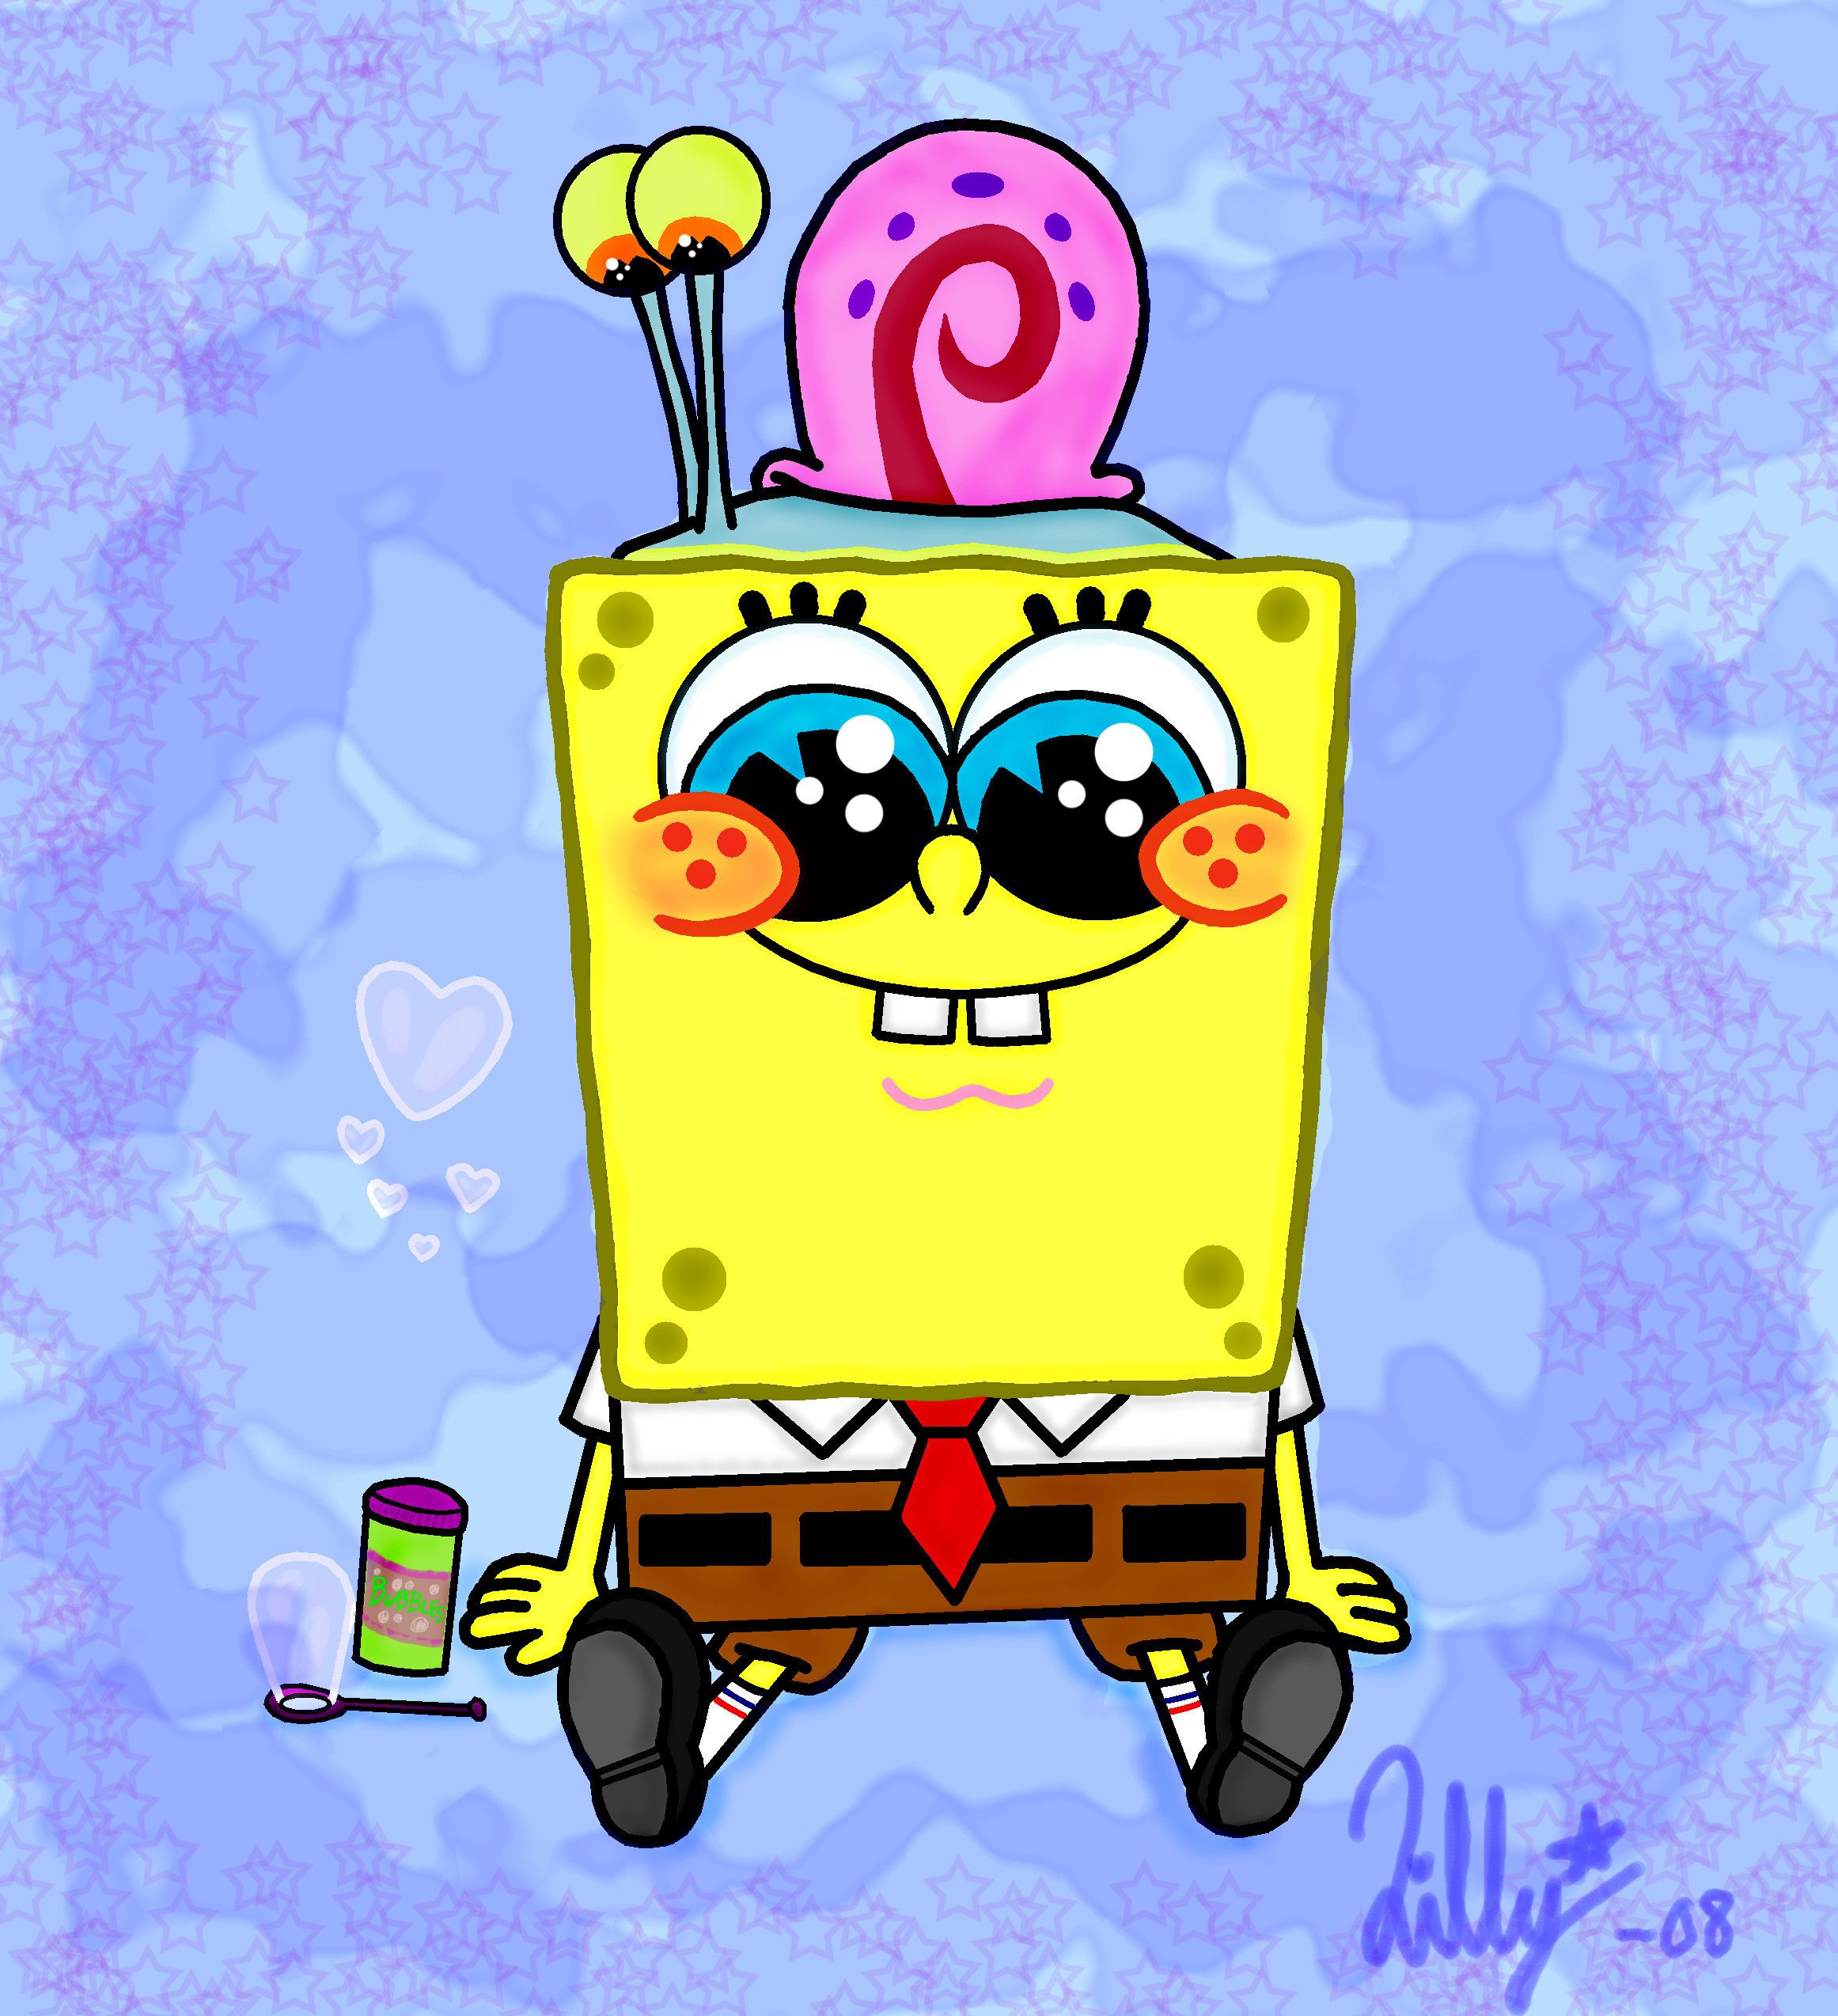 Pin By Erin Anne On Spongebob Spongebob Wallpaper Spongebob Cartoon Wallpaper